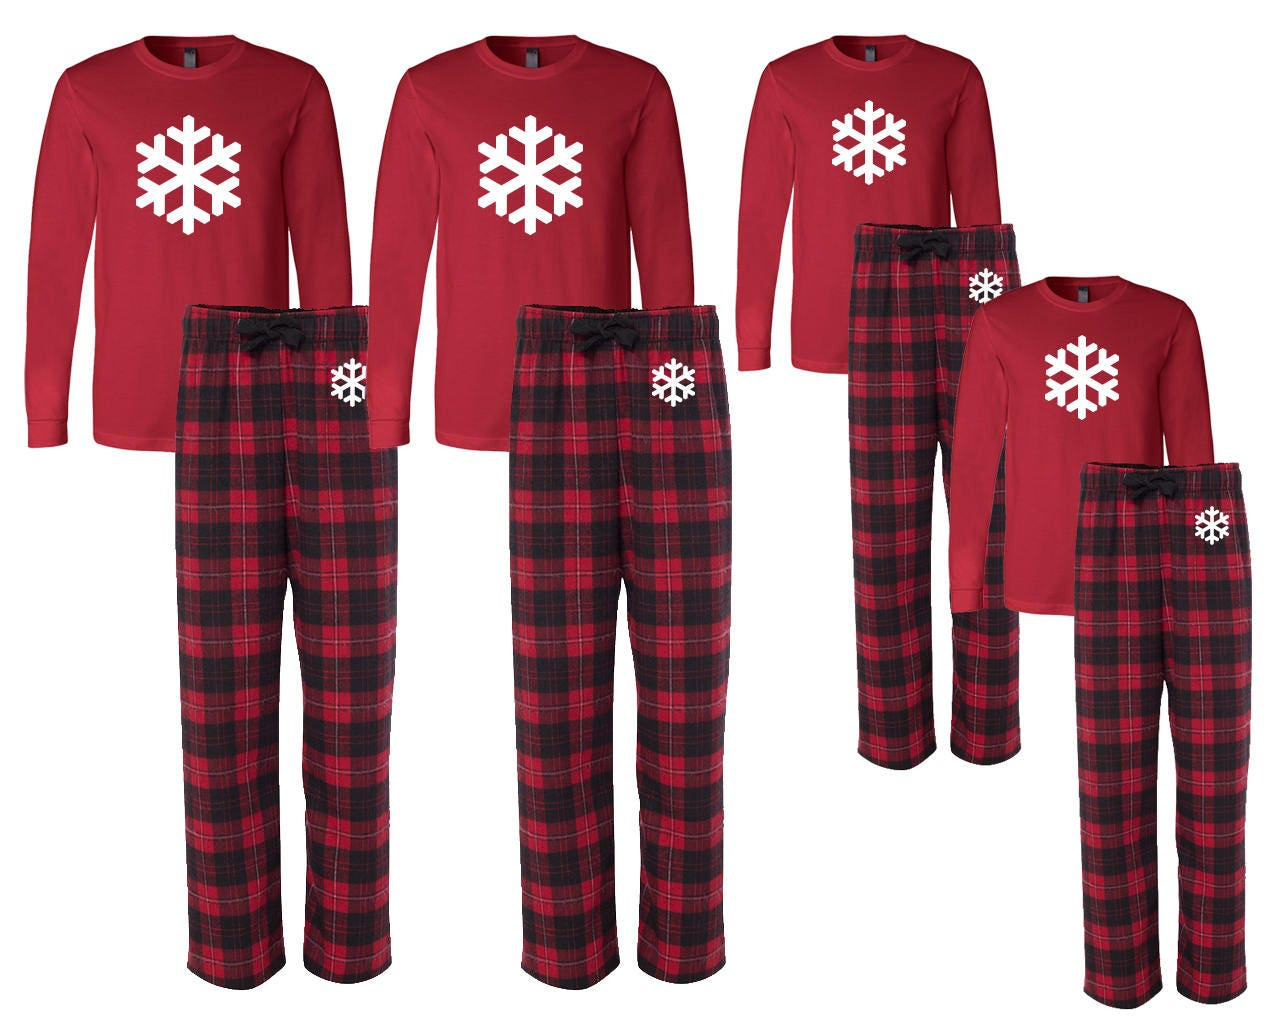 Matching Flannel Snowflake Family Christmas Pajamas Family  5c600d469